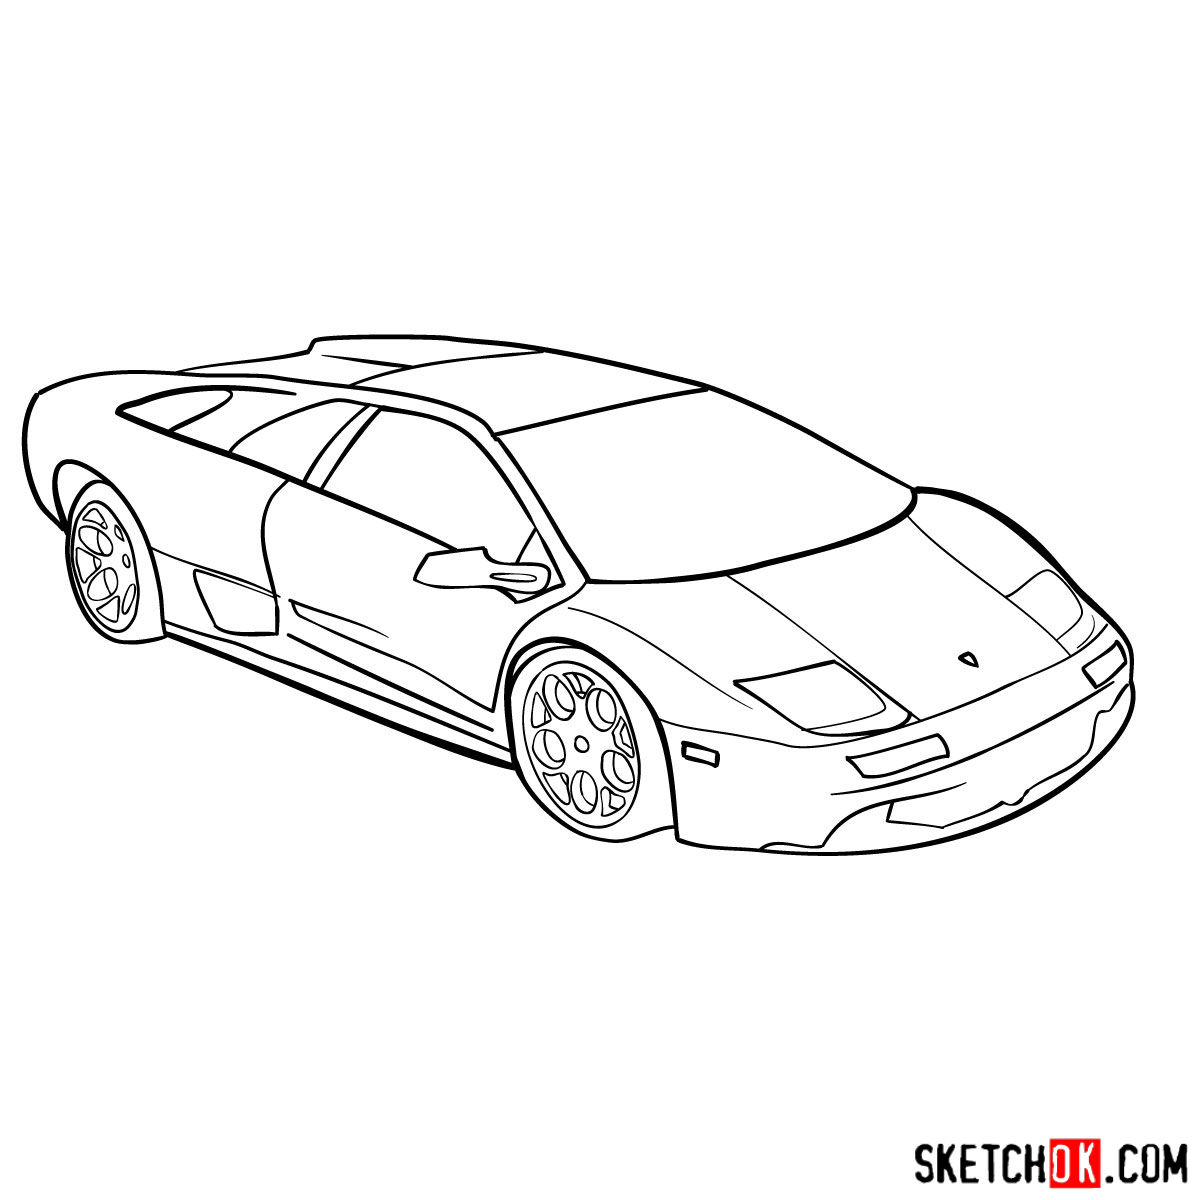 How To Draw Lamborghini Diablo